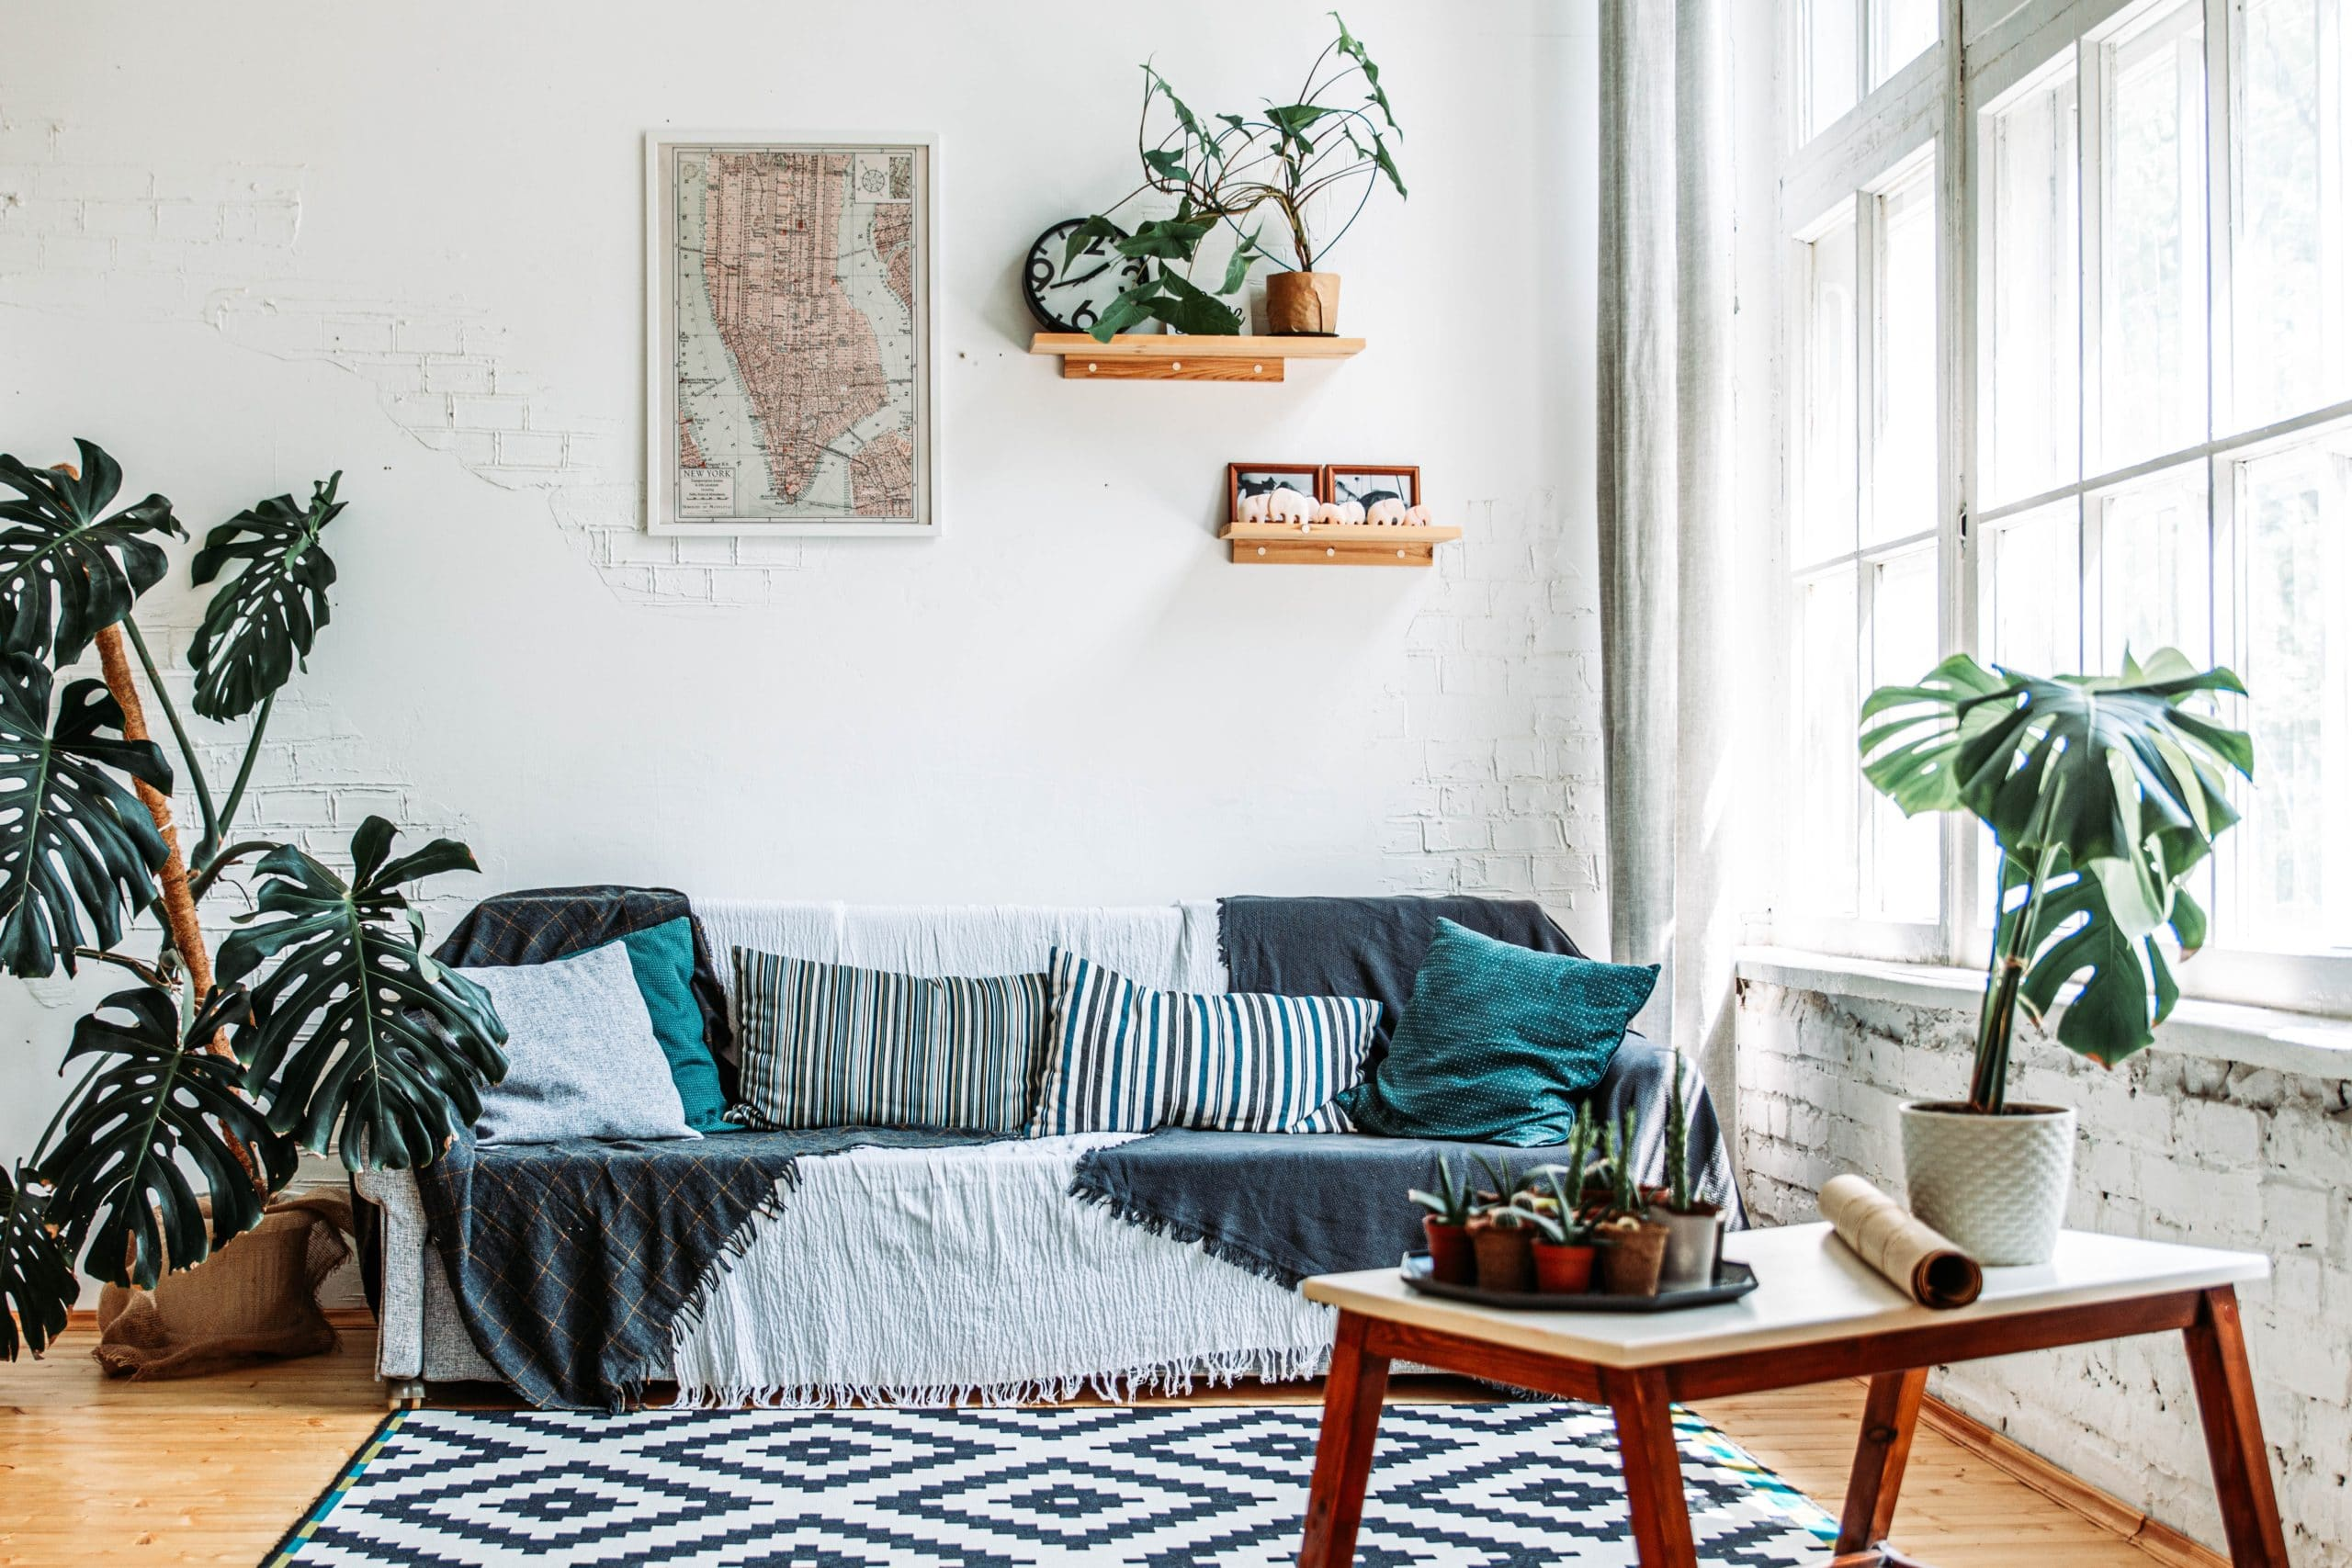 Top 10 Most Instagrammable House Plants